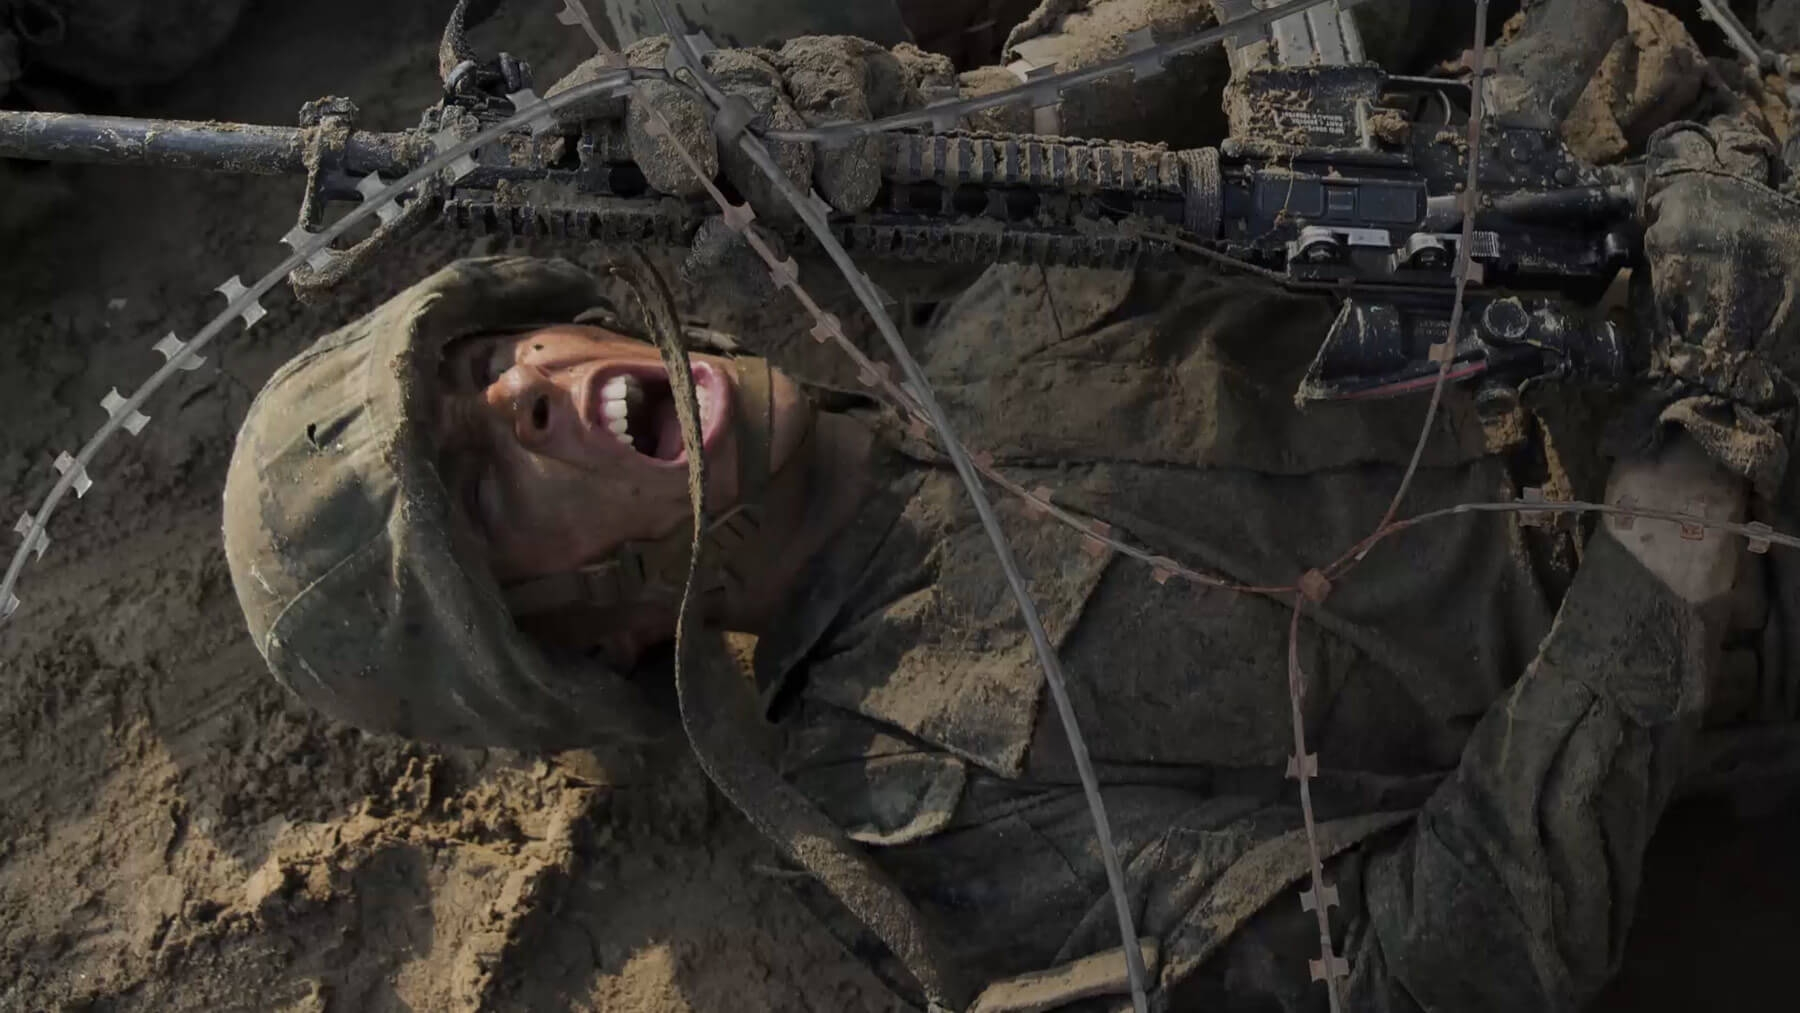 An aspiring Marine pushes himself under barbed wire during Marine Corps recruit training.